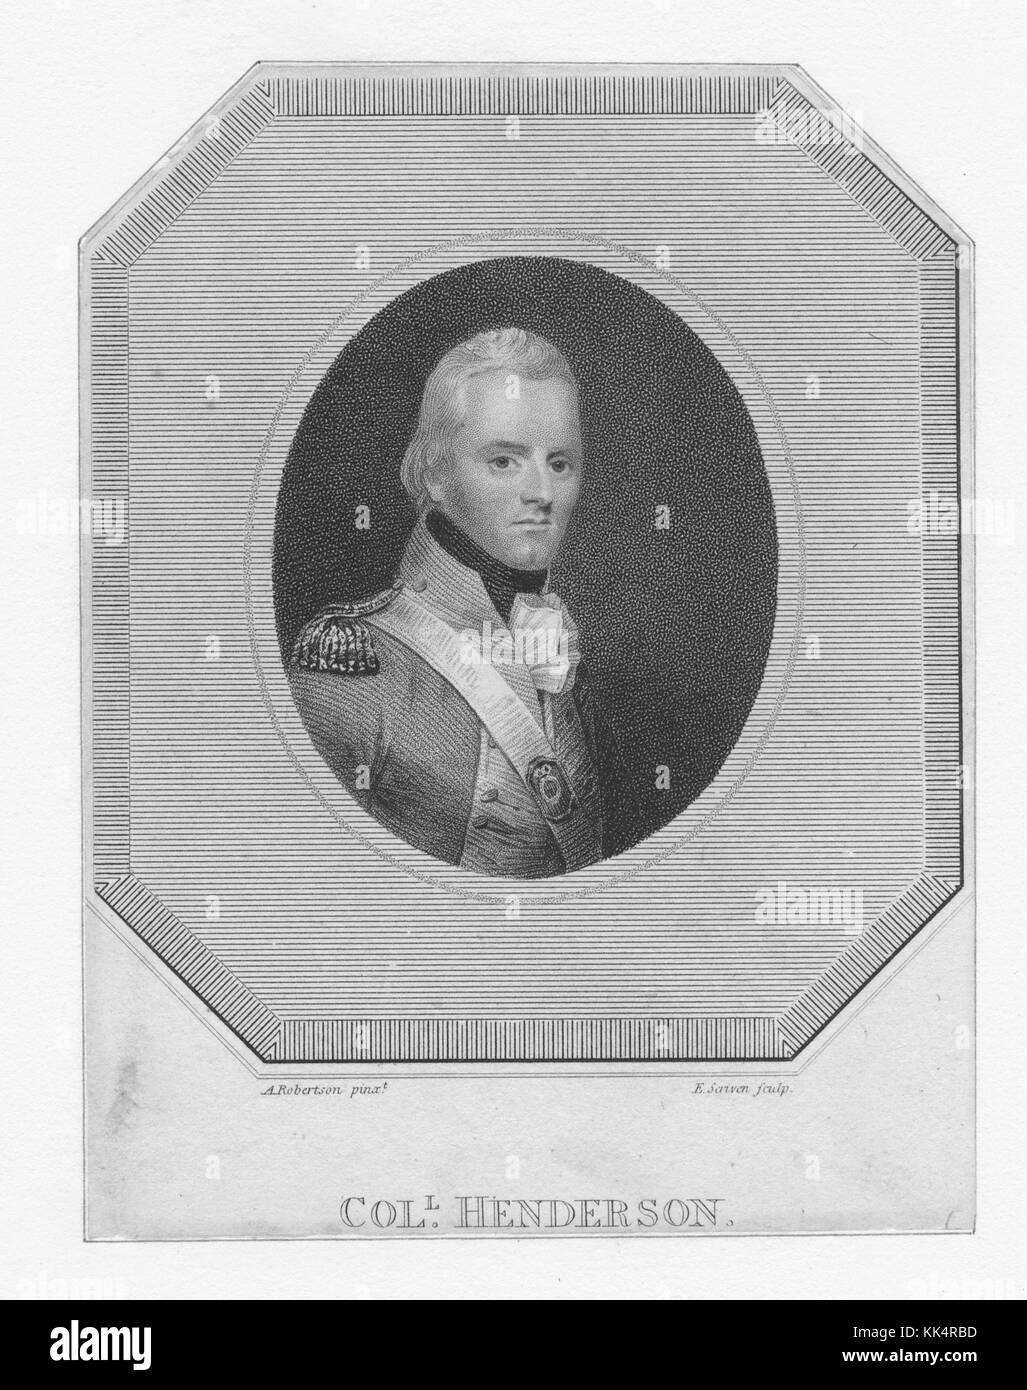 Engraved portrait of Richard Henderson, American pioneer and merchant who attempted to create a colony called Transylvania, - Stock Image